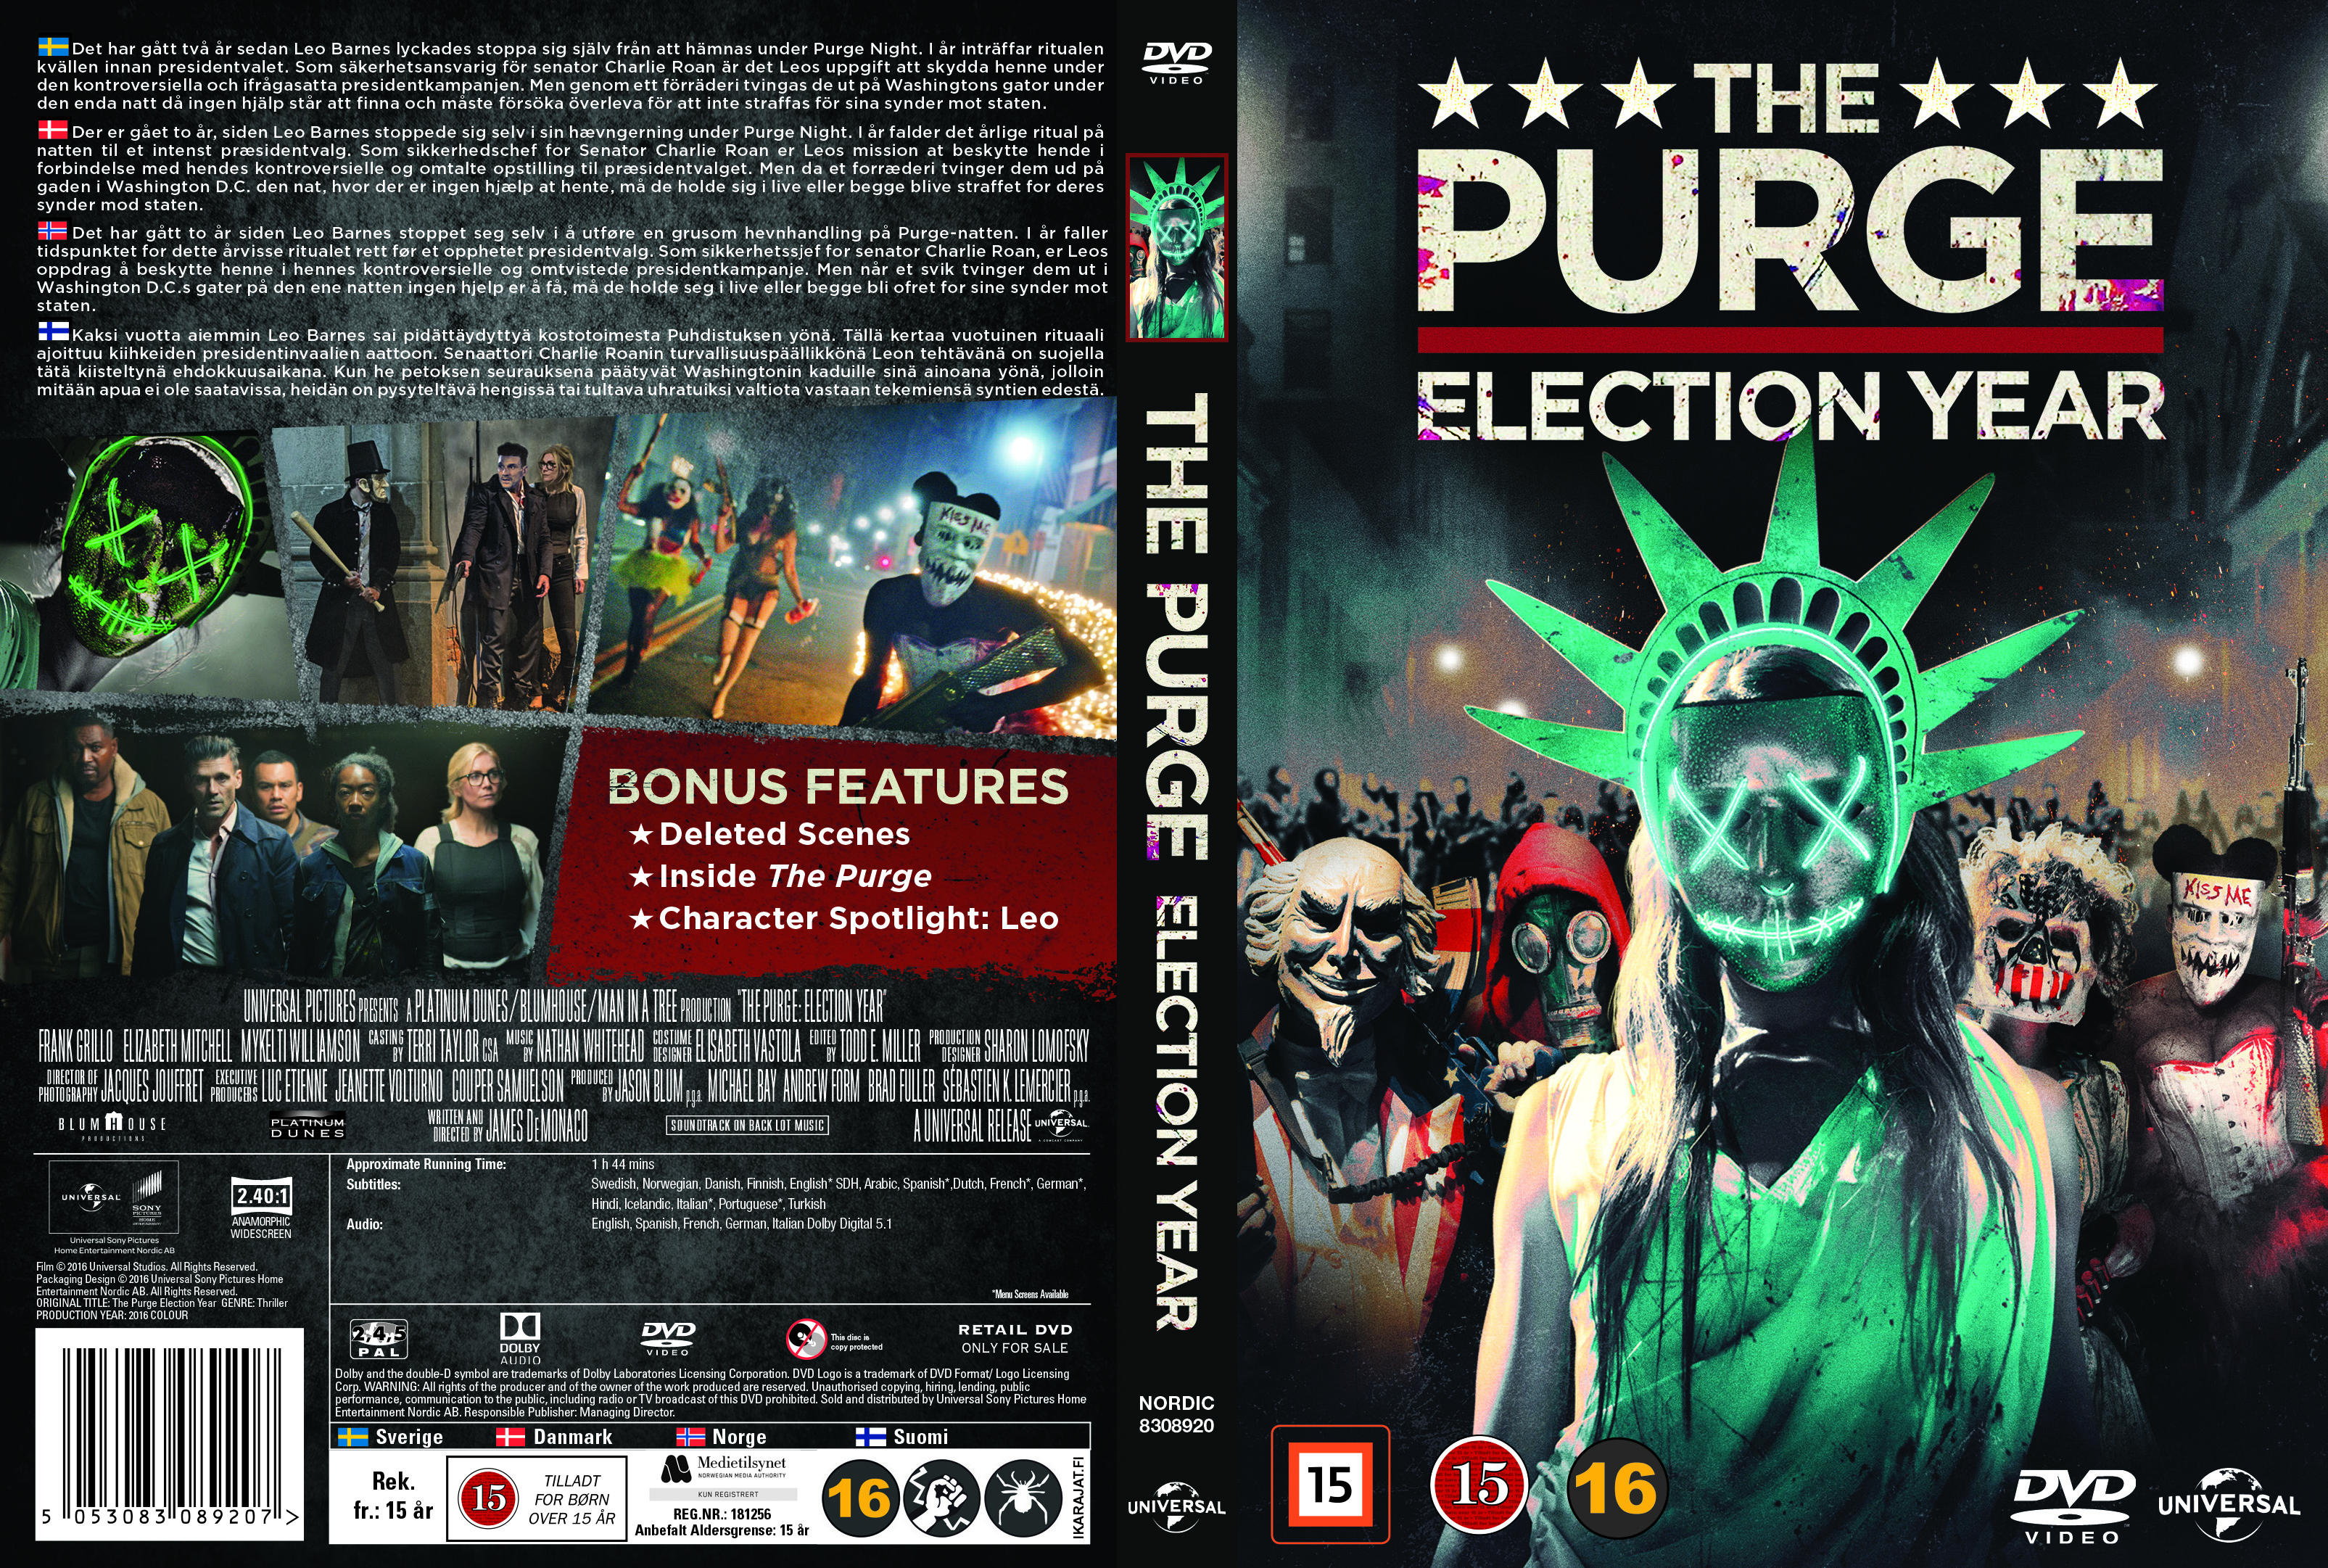 Buy The Purge 3 Election Year Dvd